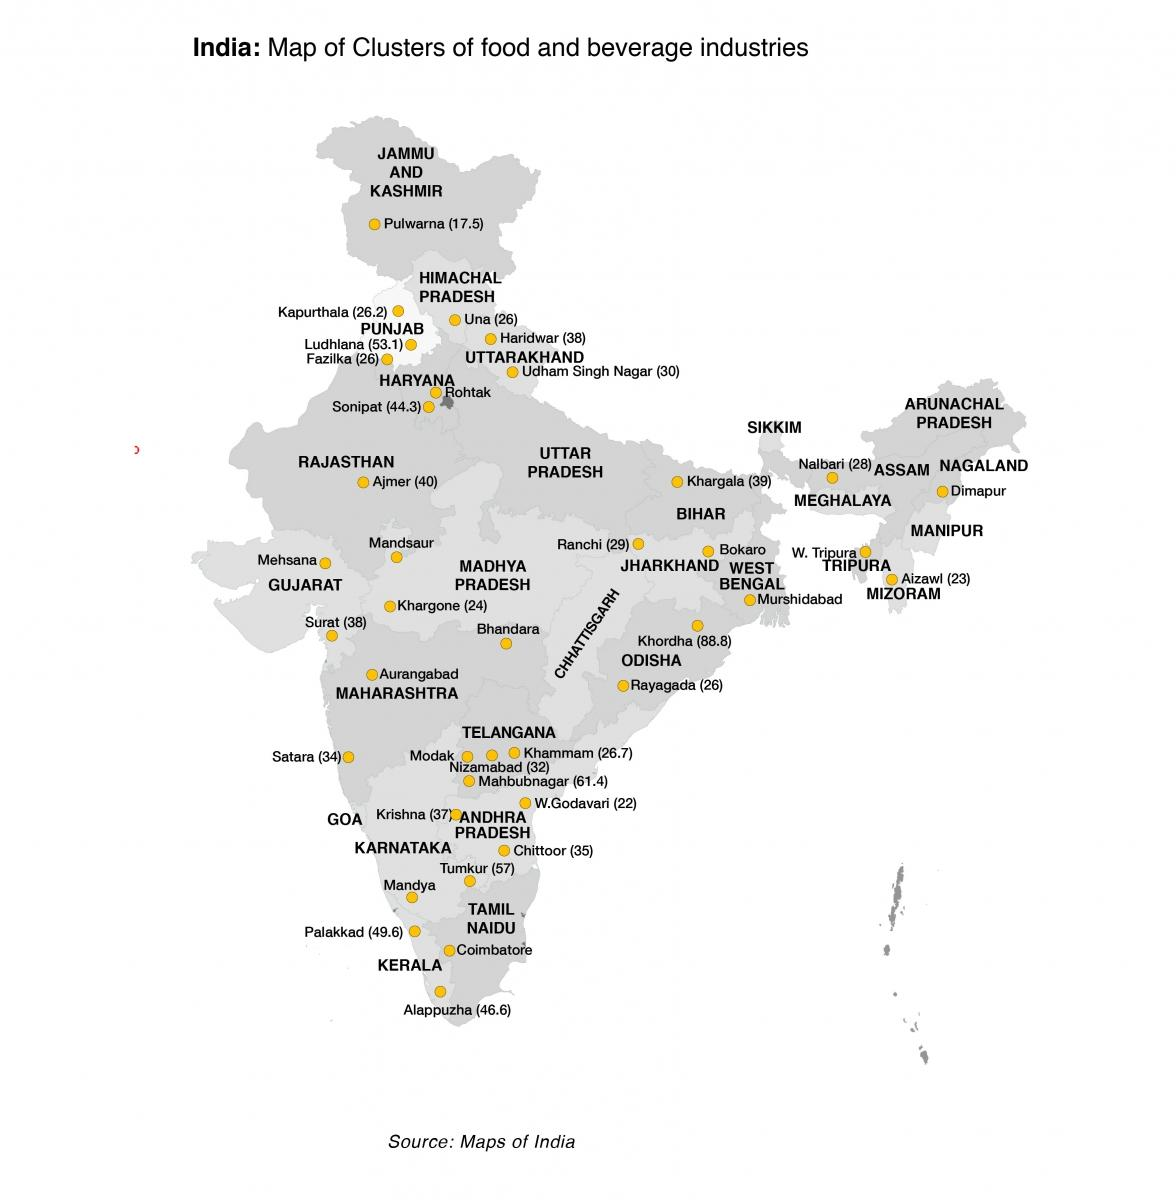 India: Food and beverage industry cluster